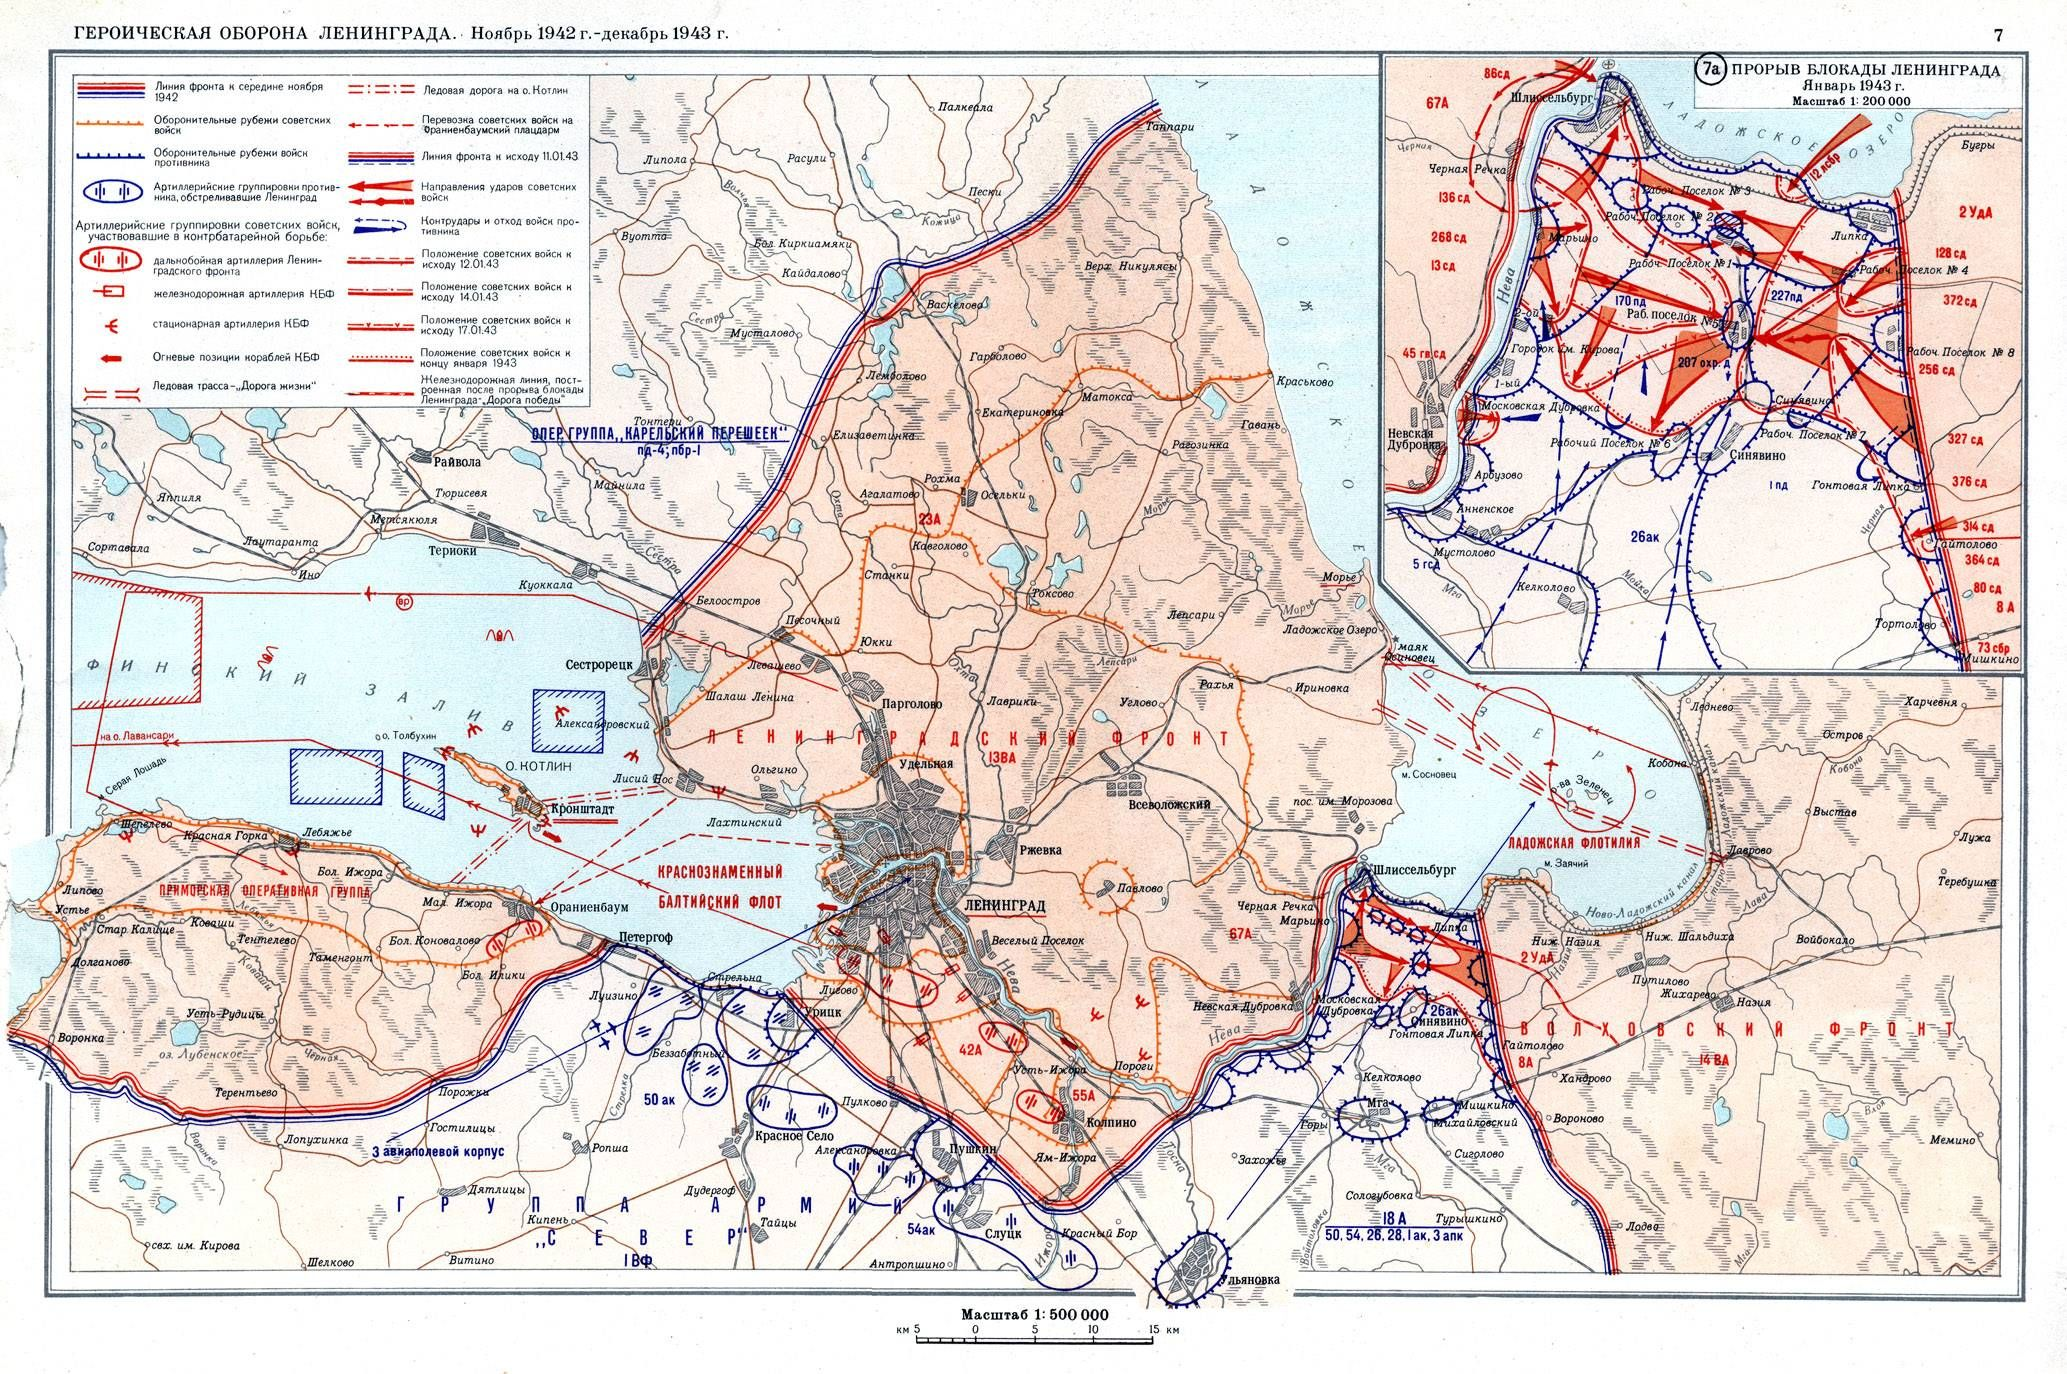 Pin on World War II. 1939 - 1945 Russian Wwii Campiagn Map on